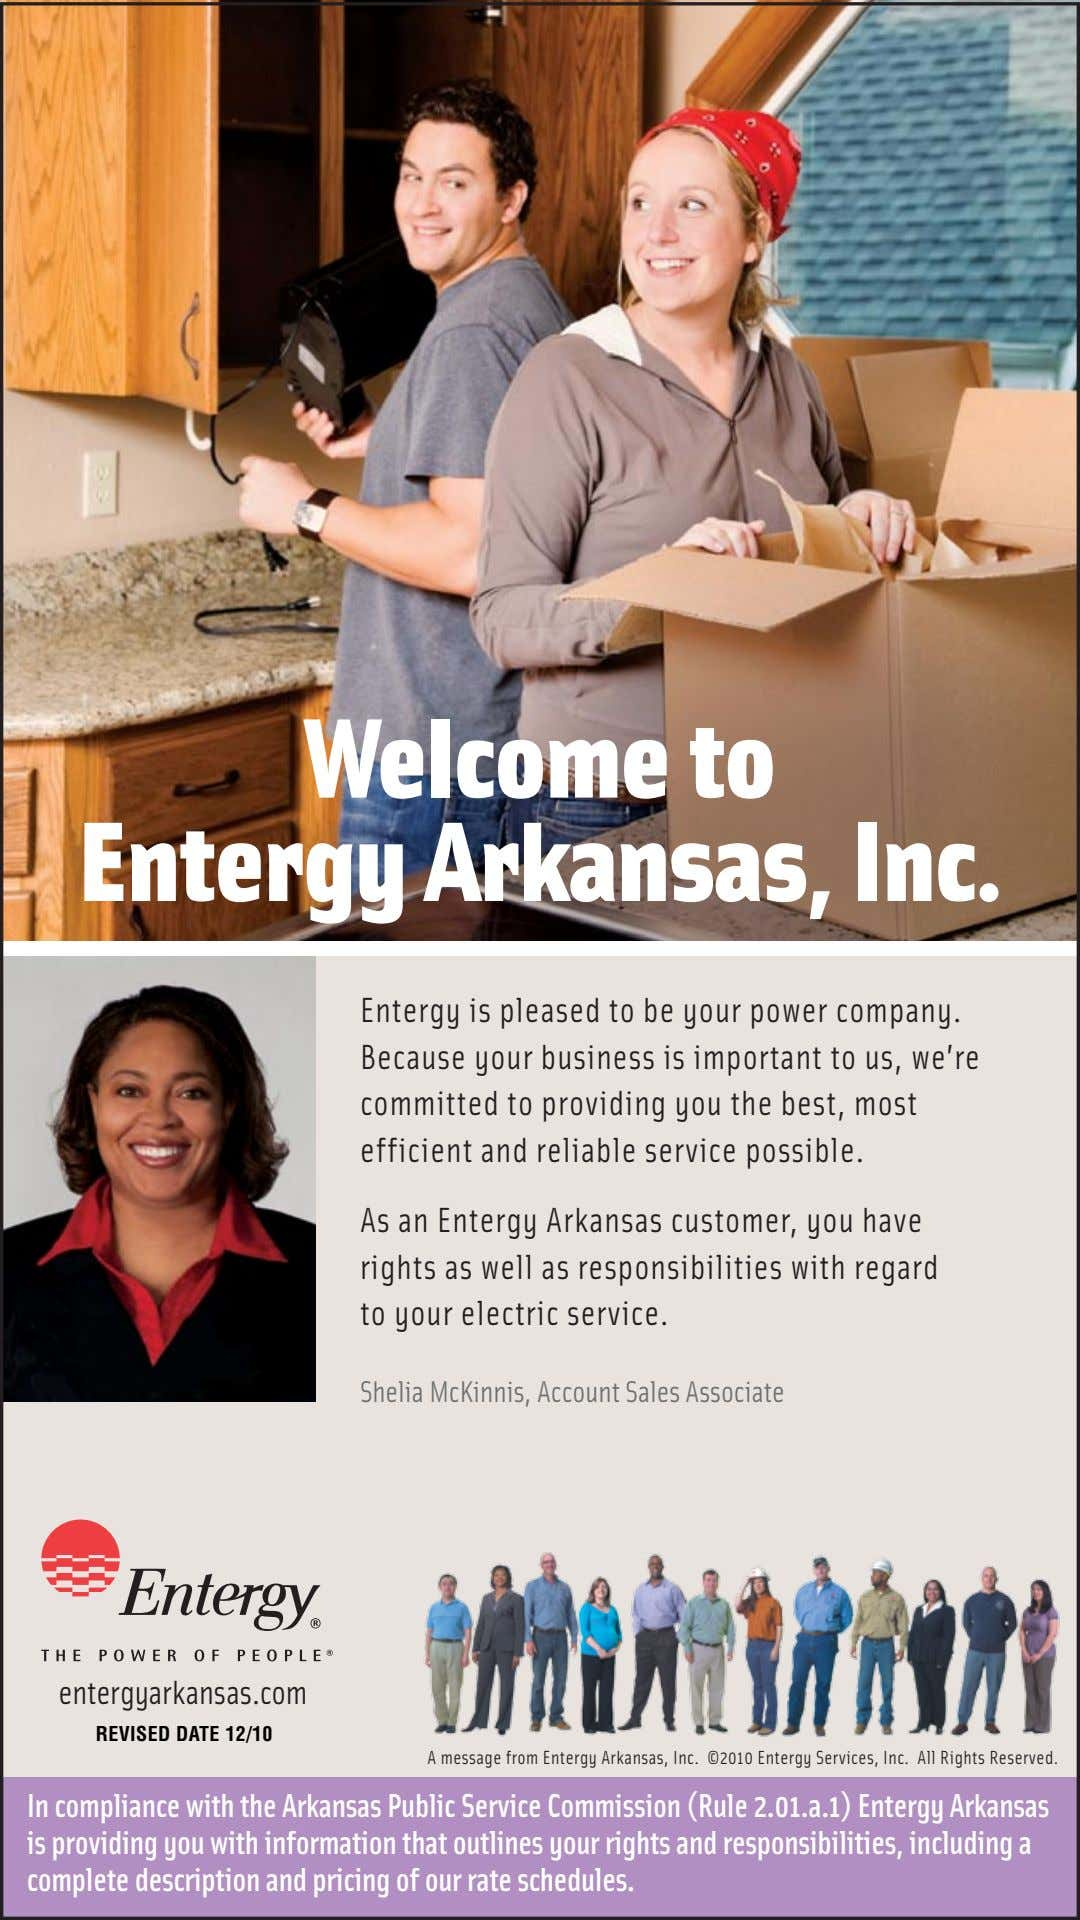 Welcome to Entergy Arkansas, Inc. Entergy is pleased to be your power company. Because your